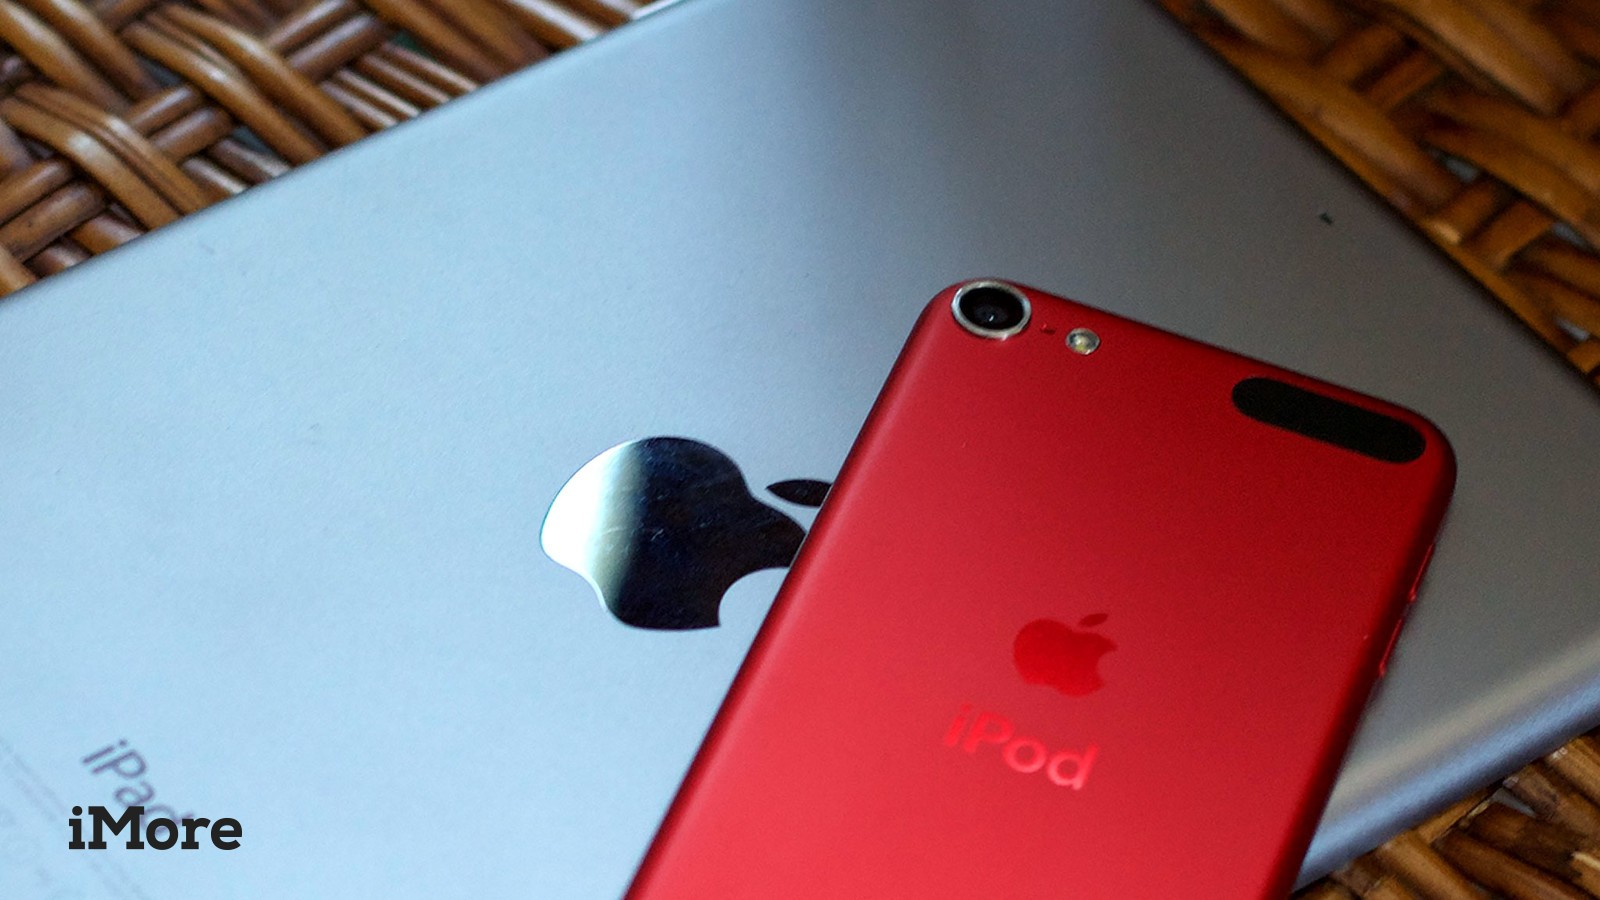 iPad mini 3 and red iPod touch